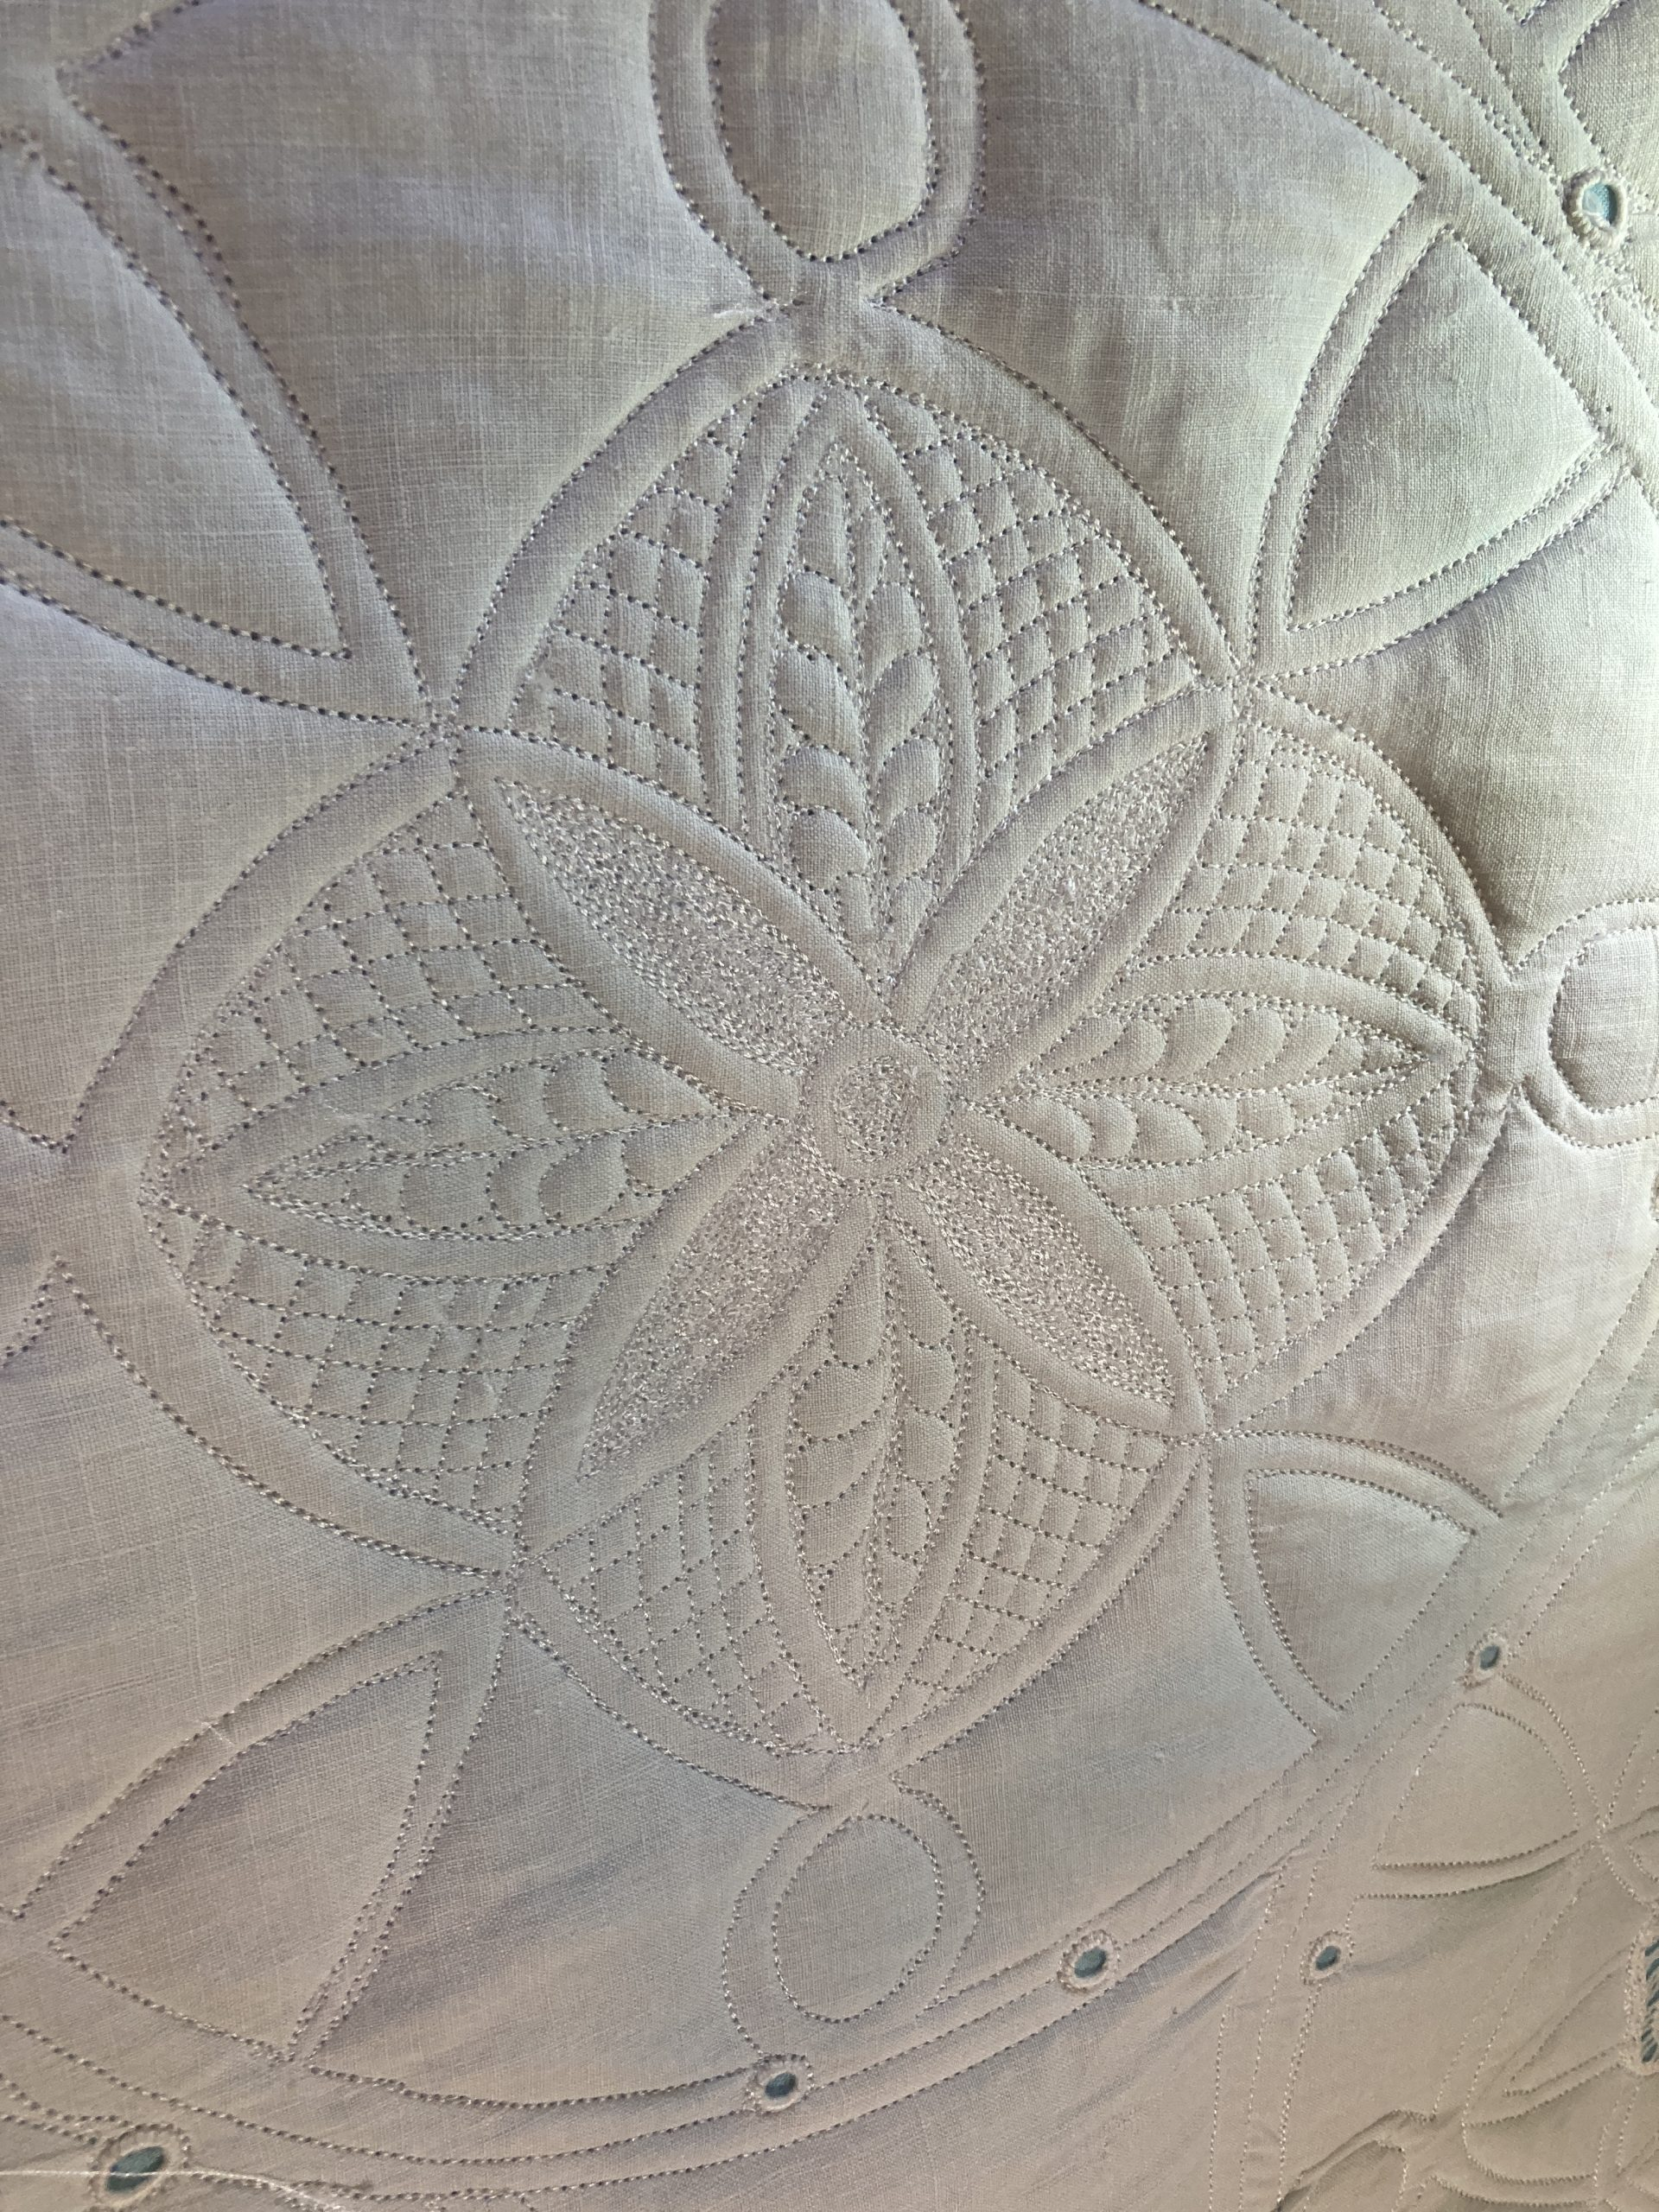 Tablecloth Project, Part 3: Quilting